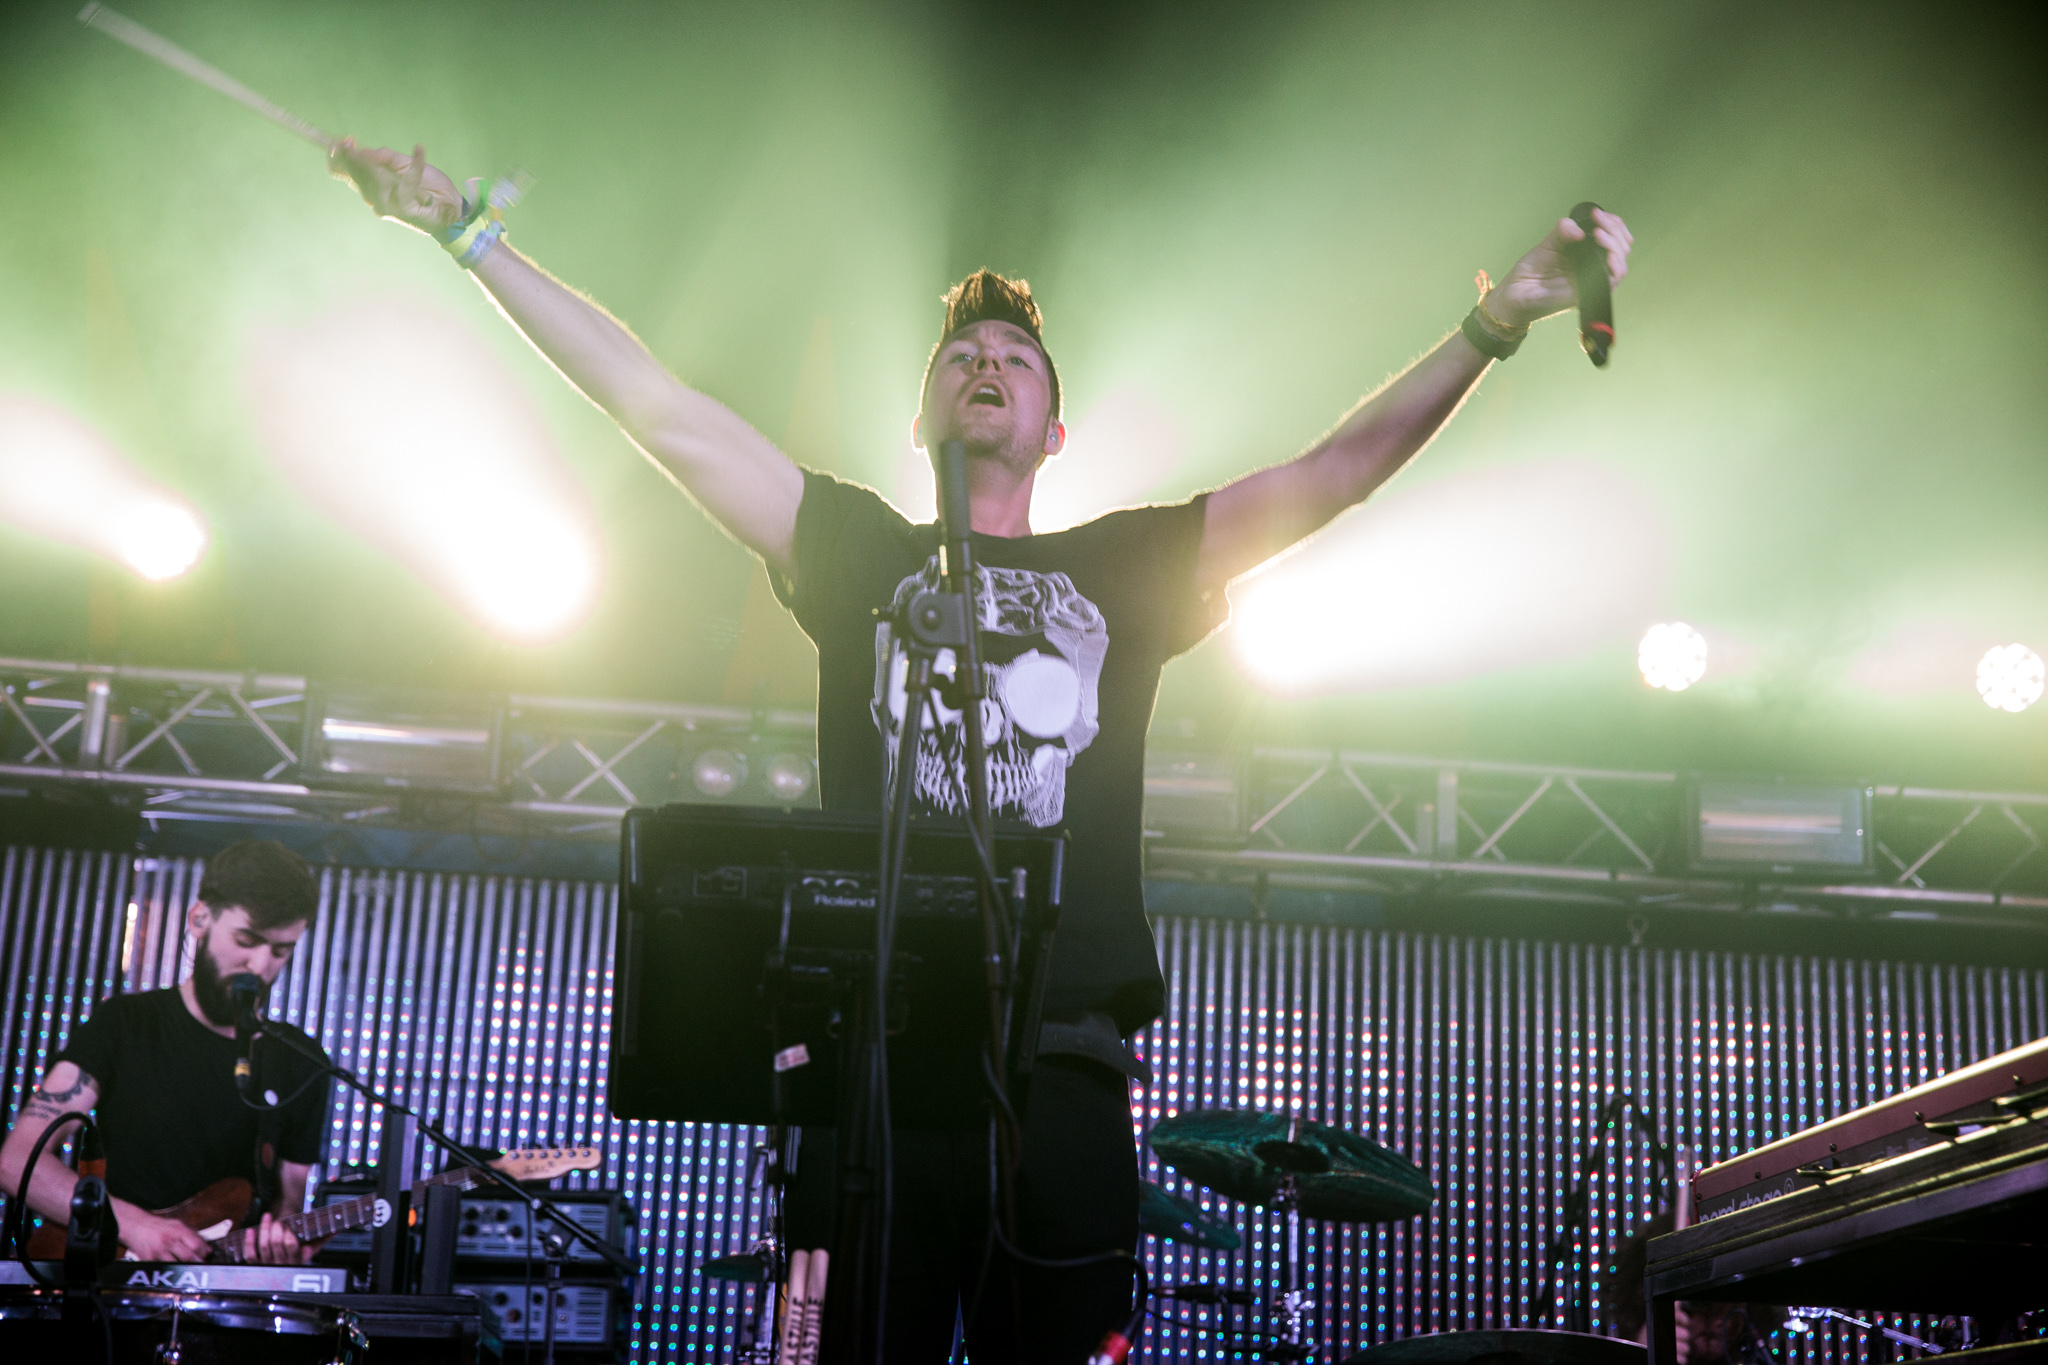 Bastille's new album will propel them to even greater heights